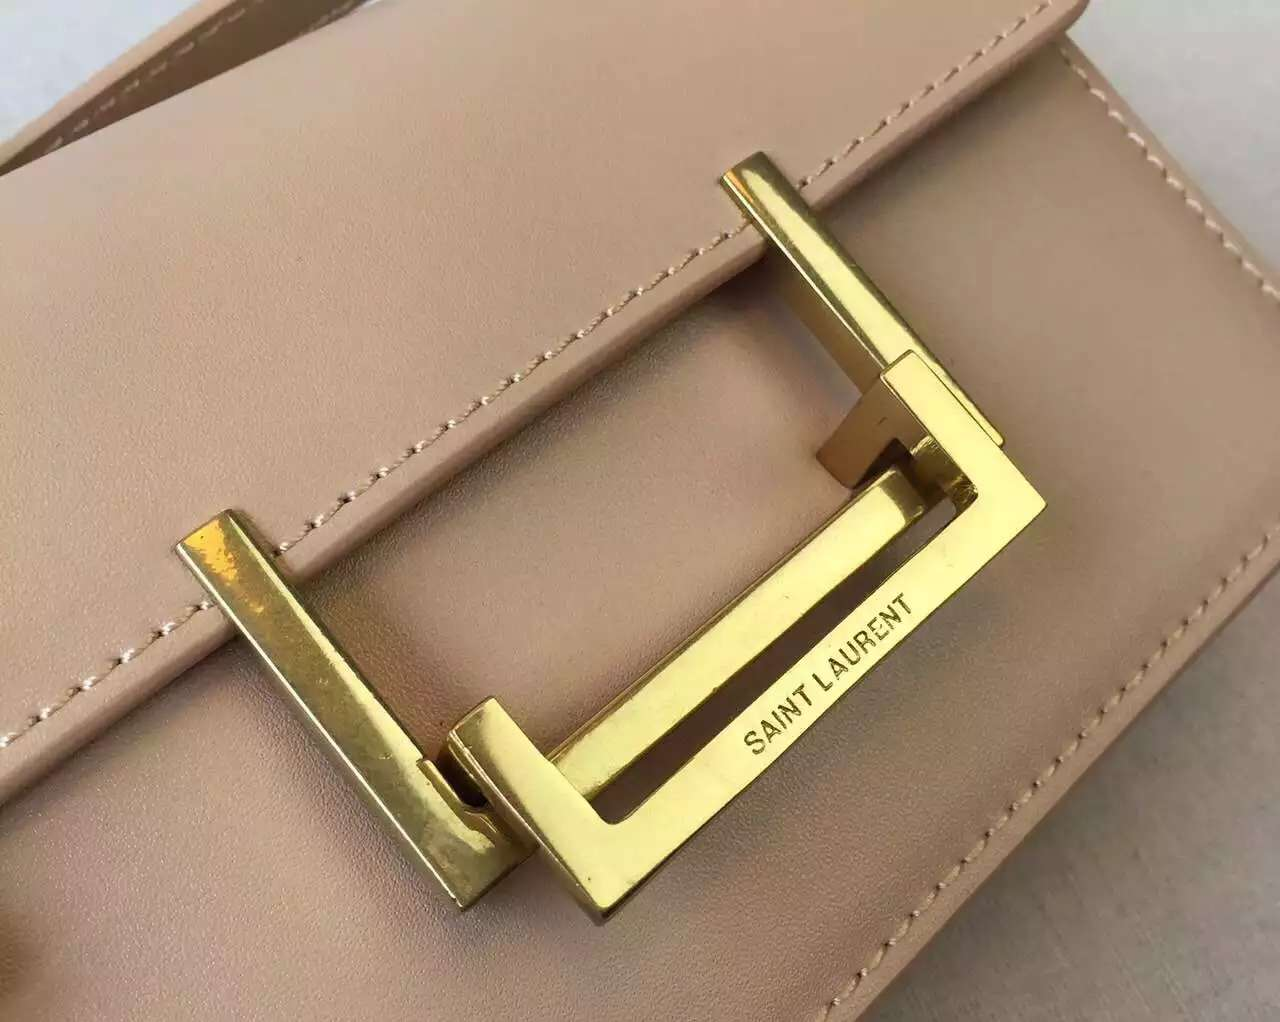 2015 Cheap YSL Out-Sale with Free Shipping-Saint Laurent Classic Small Lulu Leather Bag in Apricot Calfskin Leather